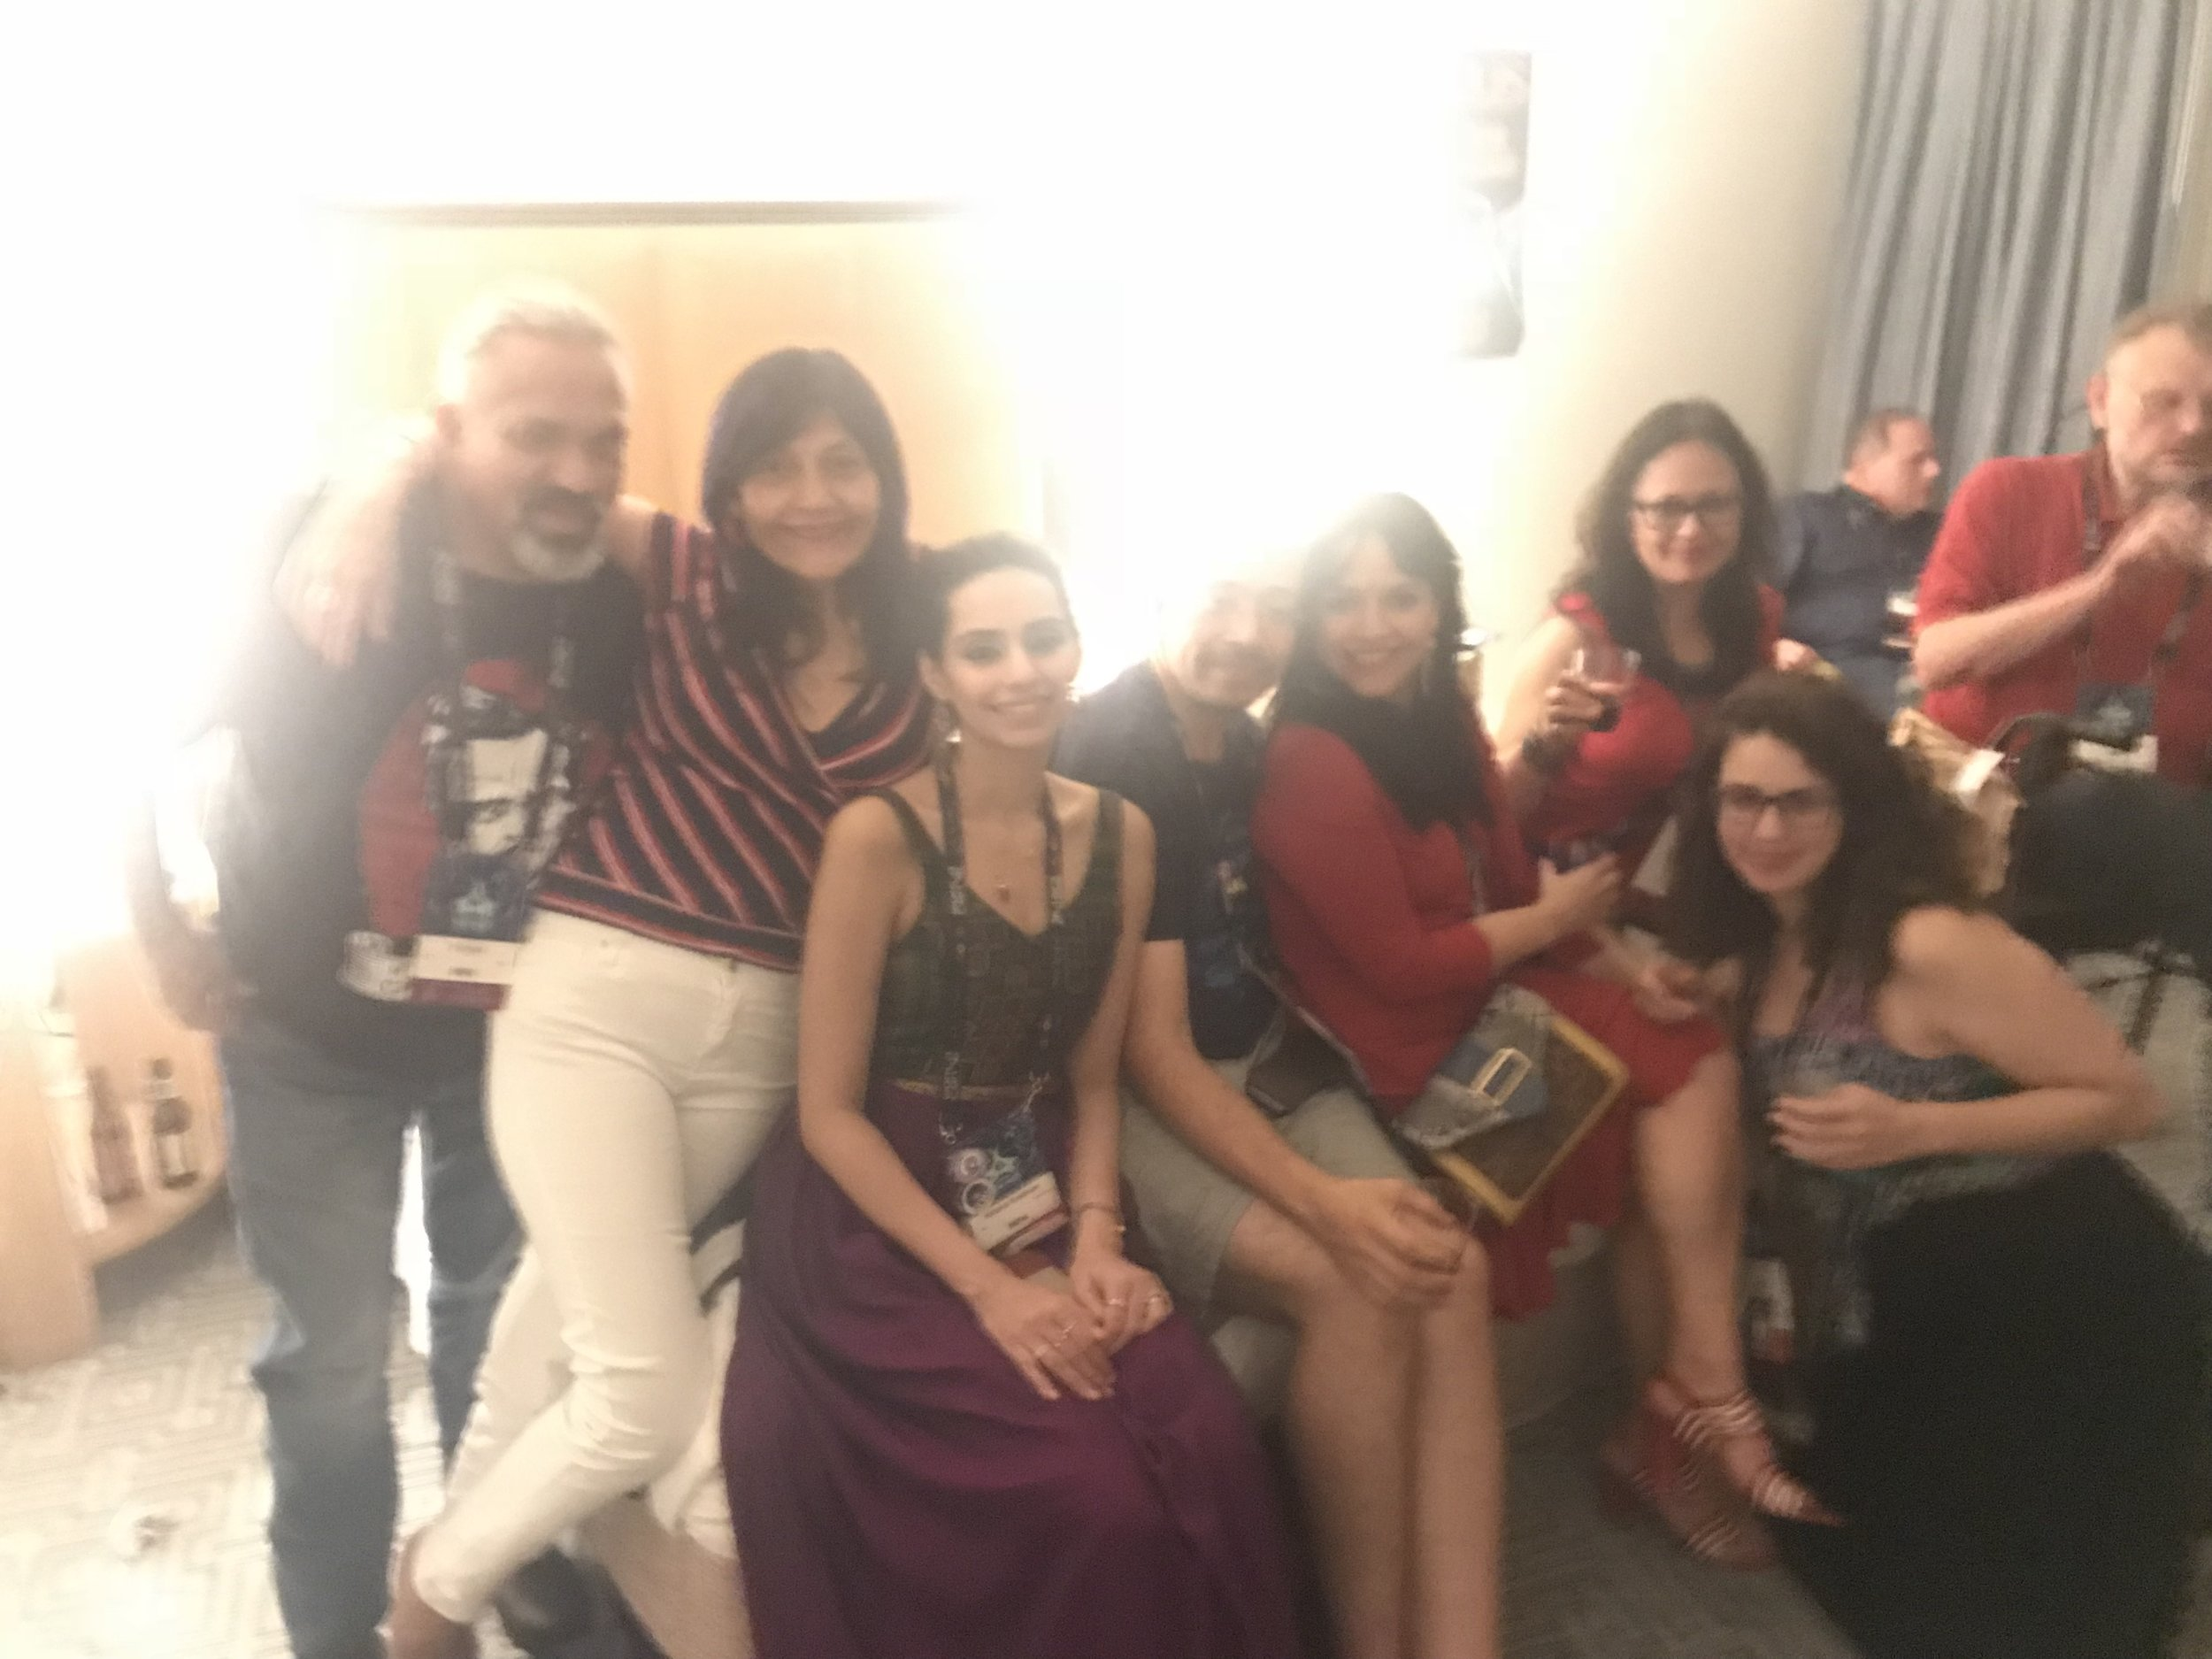 Blurry partiers: Gerardo Horacio Porcayo, Patty Garcia, Kirtana Rex, Héctor Gonzalez, Gabriela Damián, Libia Brinda, and Adrea Chapela at the Locus party on Saturday night at Worldcon 76